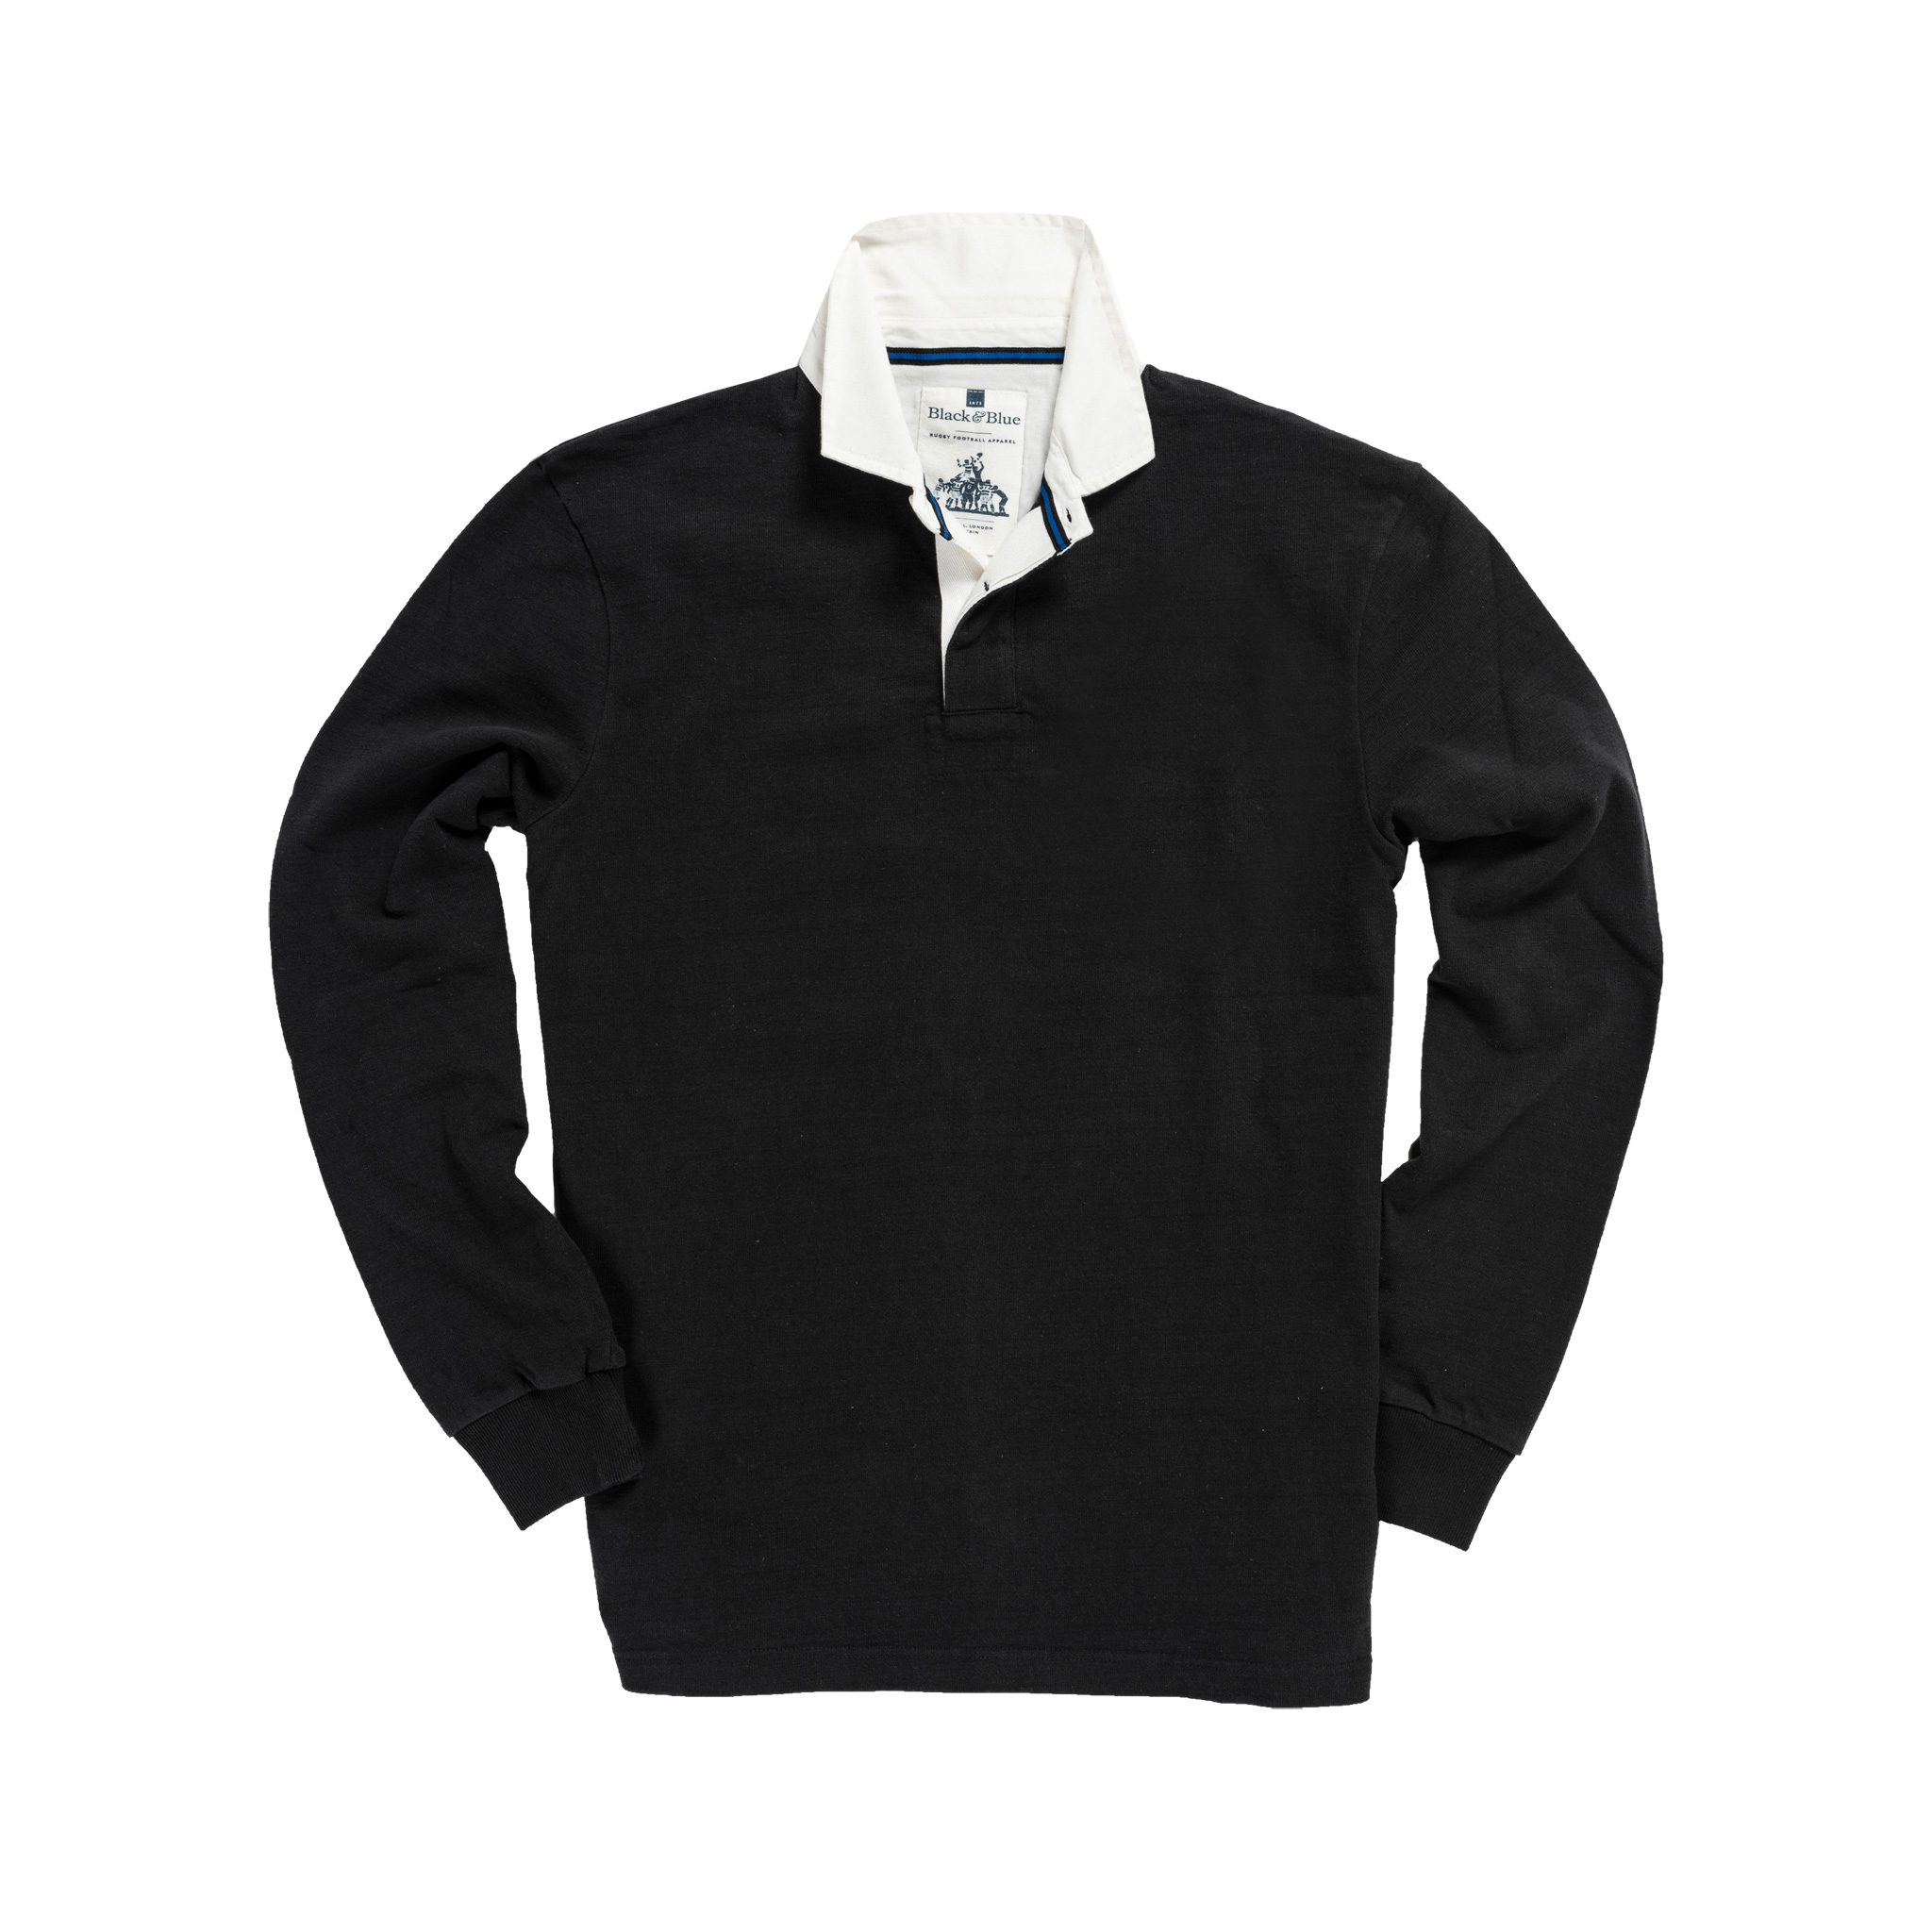 Classic Black 1871 Vintage Rugby Shirt